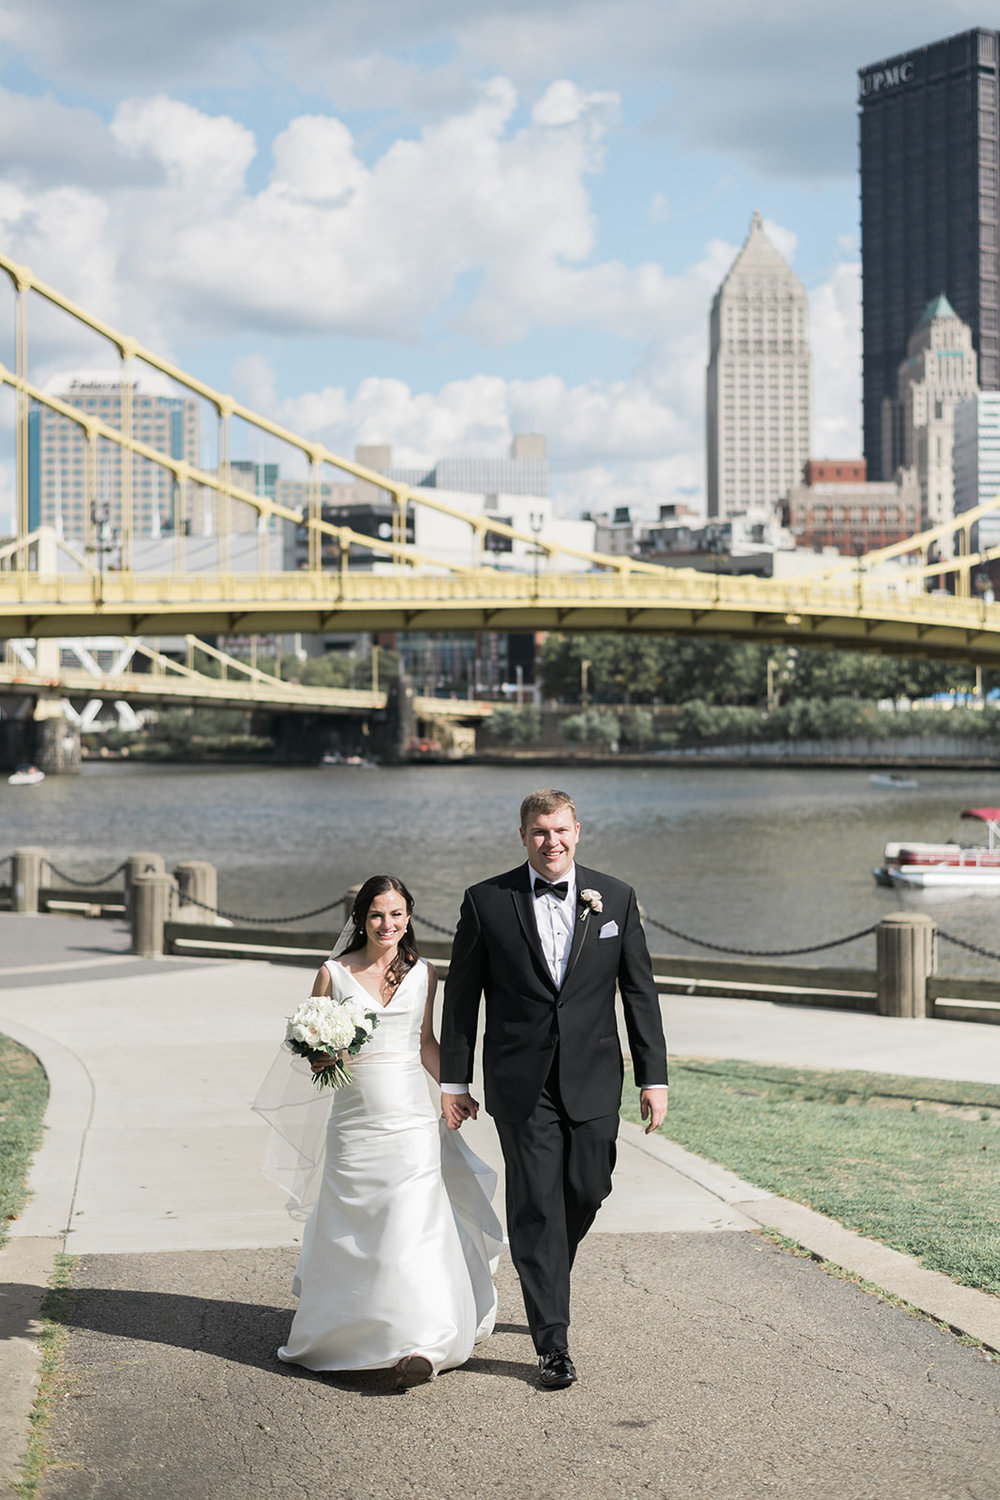 Bride and groom pose for wedding photos for Pittsburgh wedding at PNC Park planned by Exhale Events. Find more wedding inspiration at exhale-events.com!